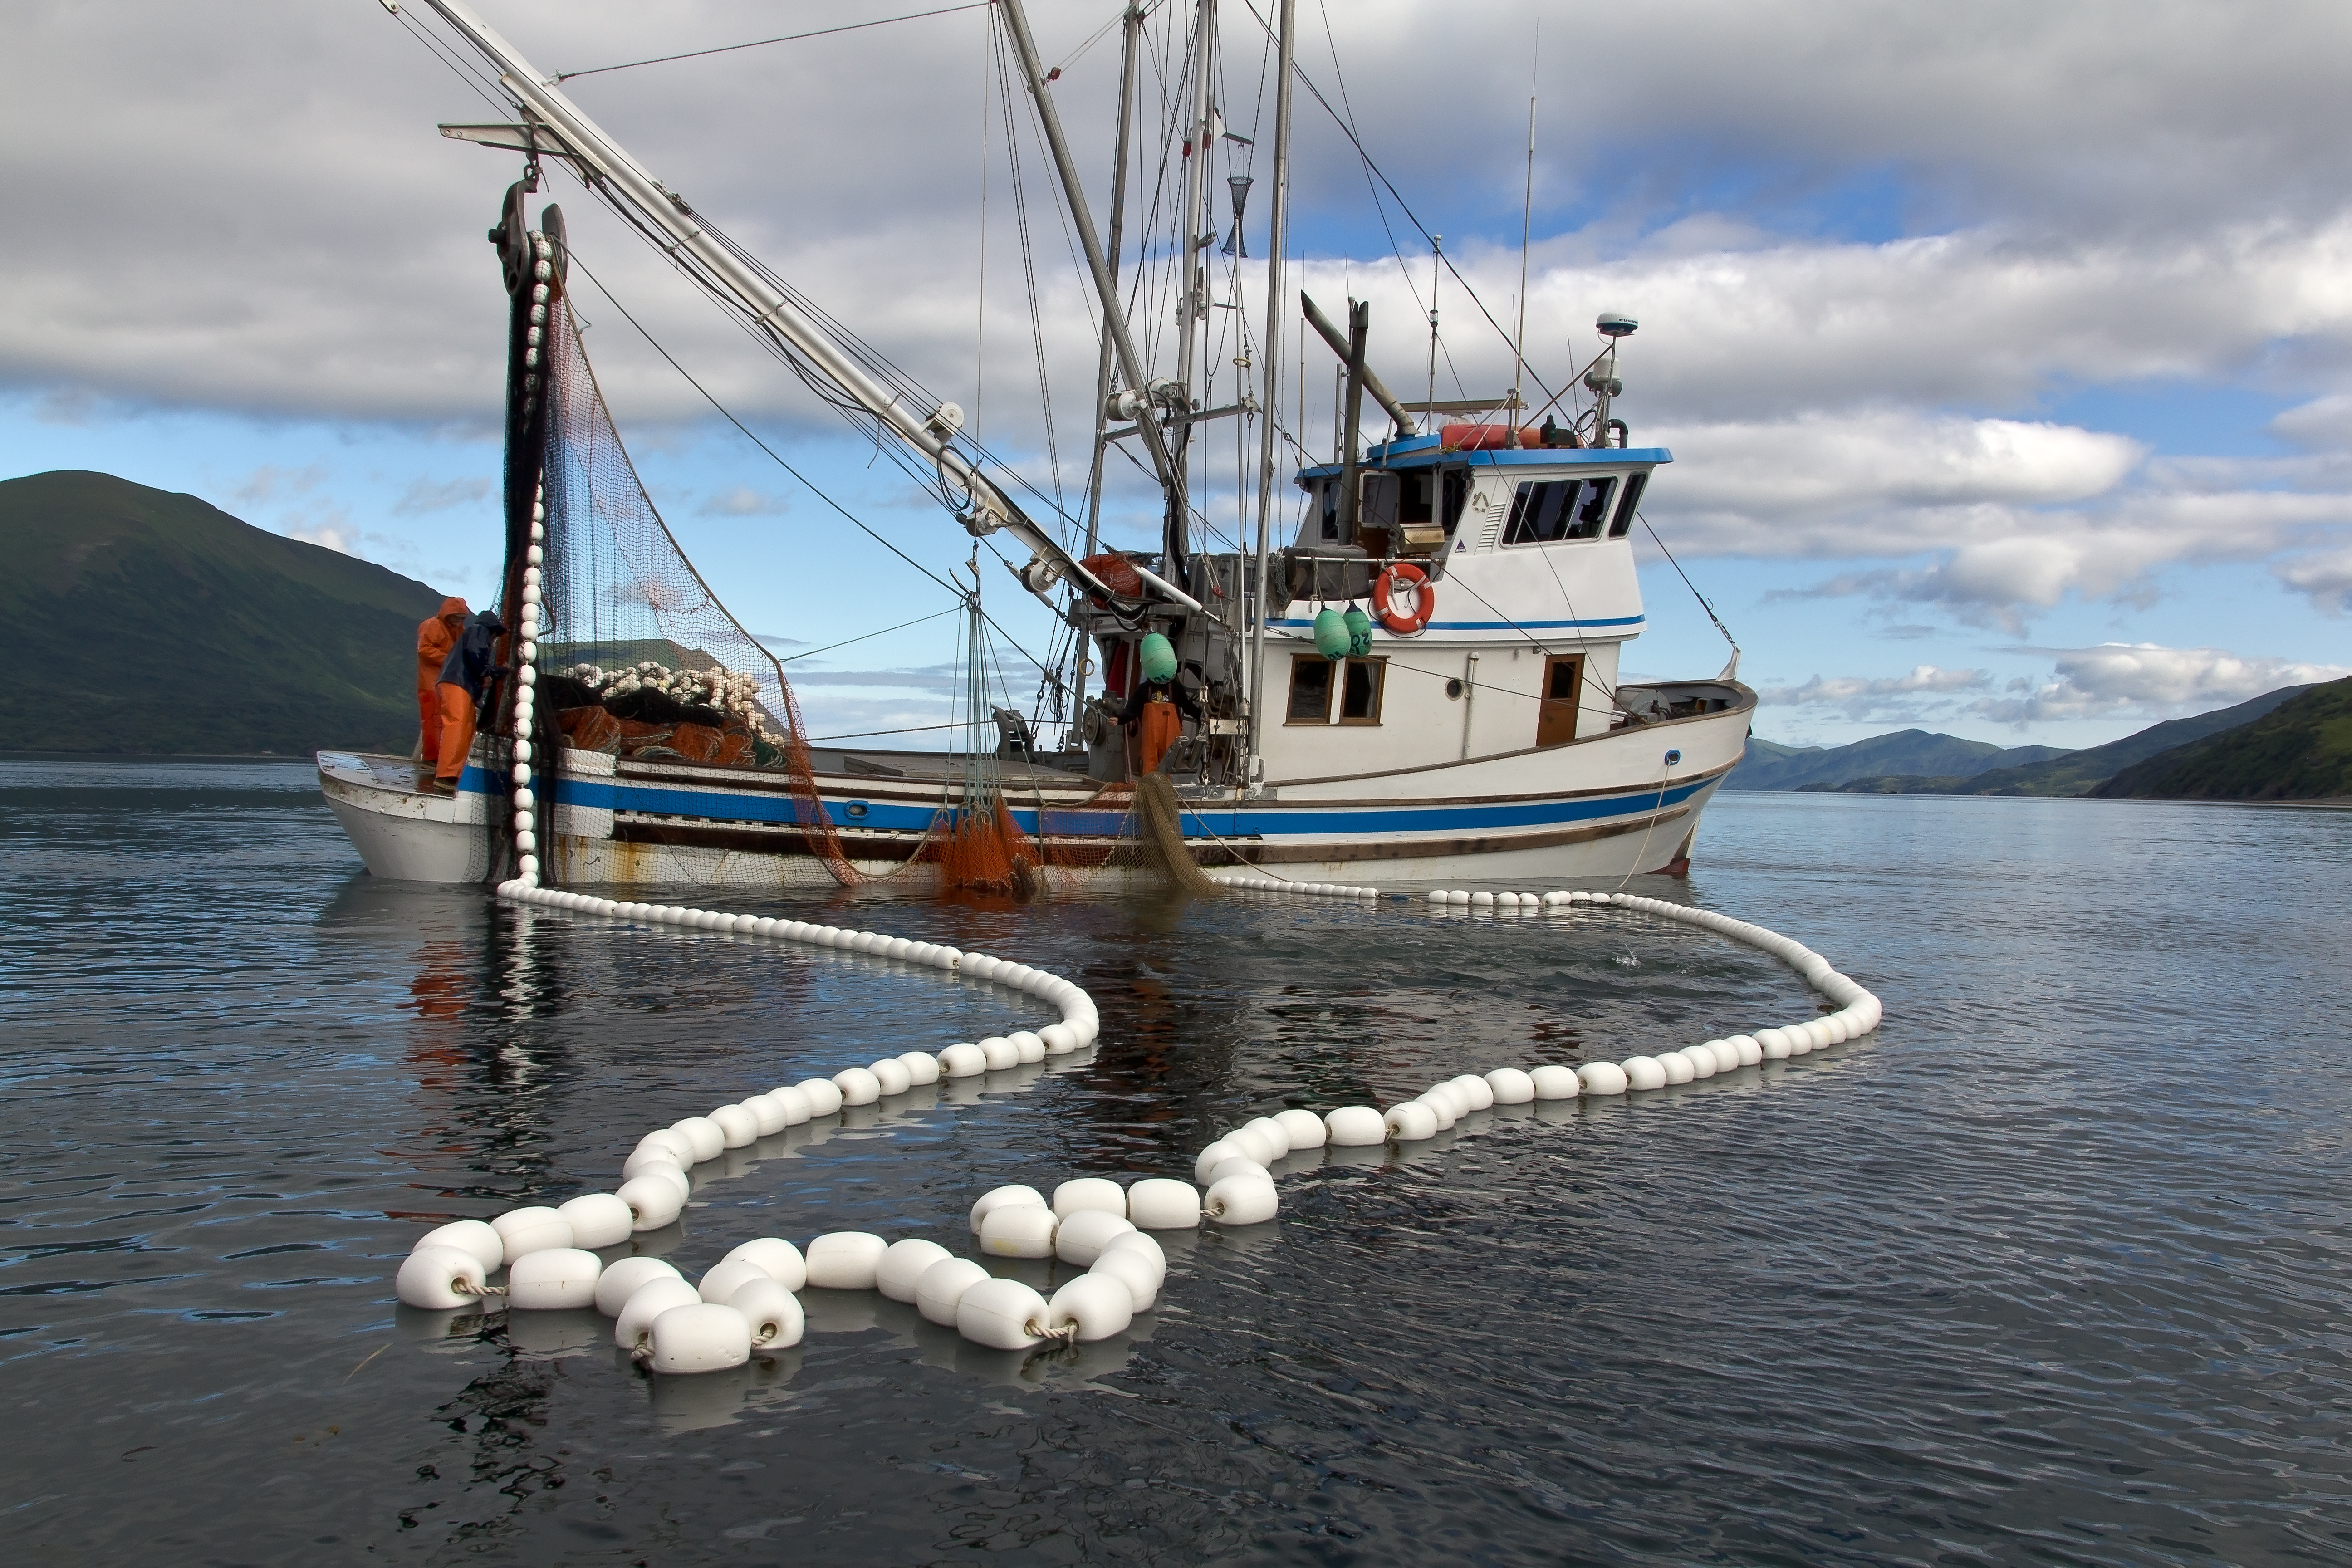 Cooperation, not confrontation needed to solve post-Brexit fishing challenges